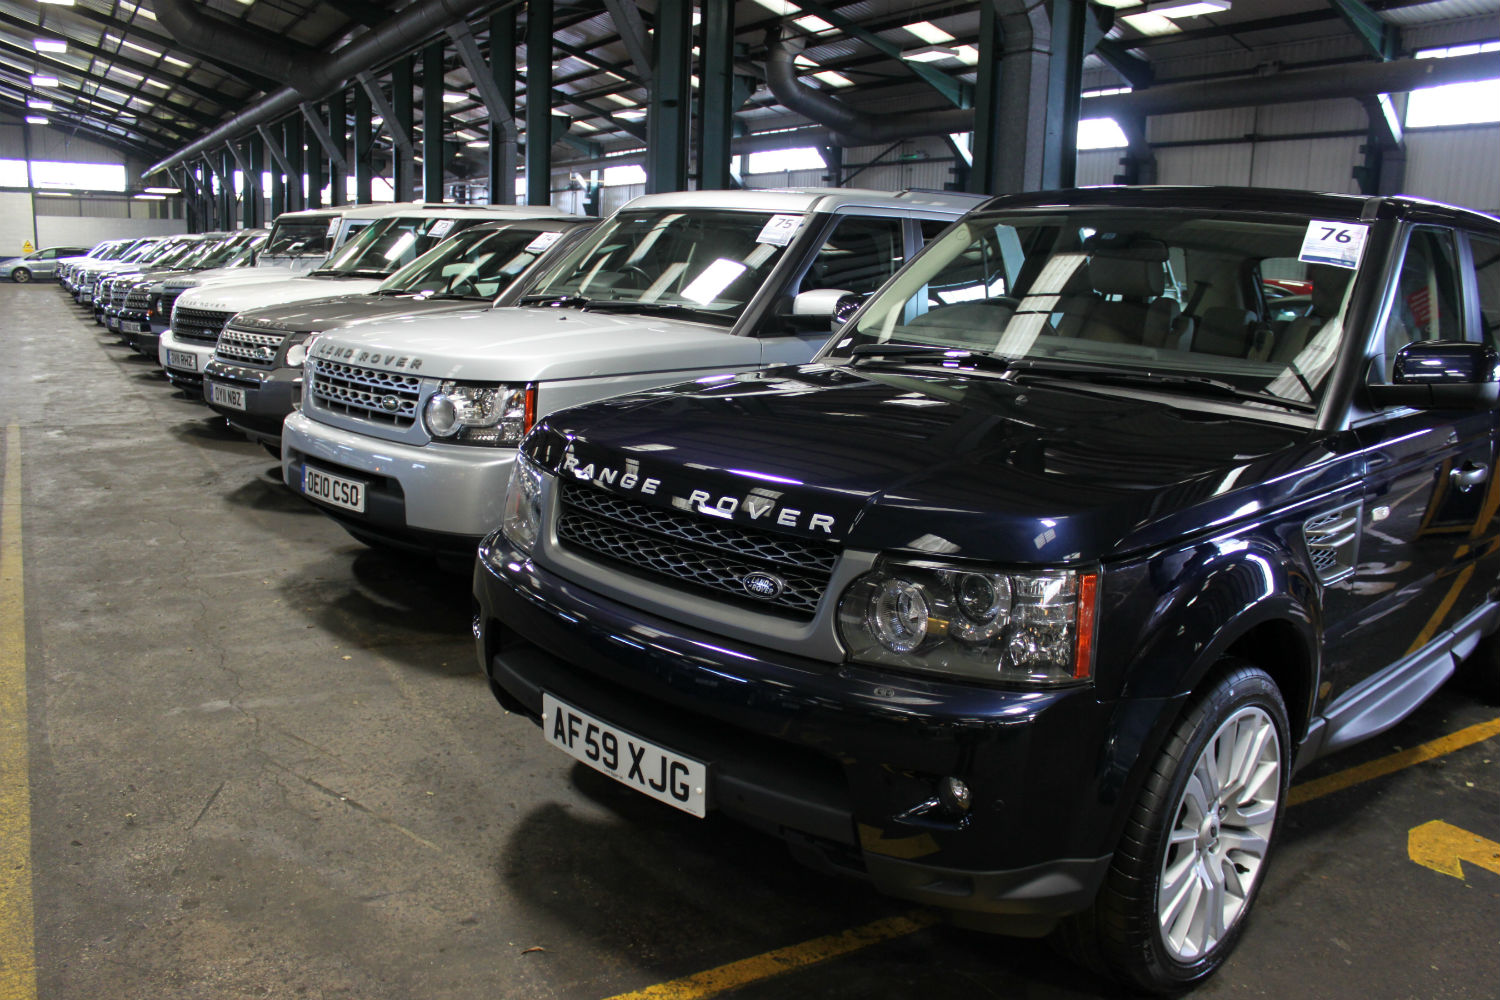 Line up of Land Rovers ready for auction